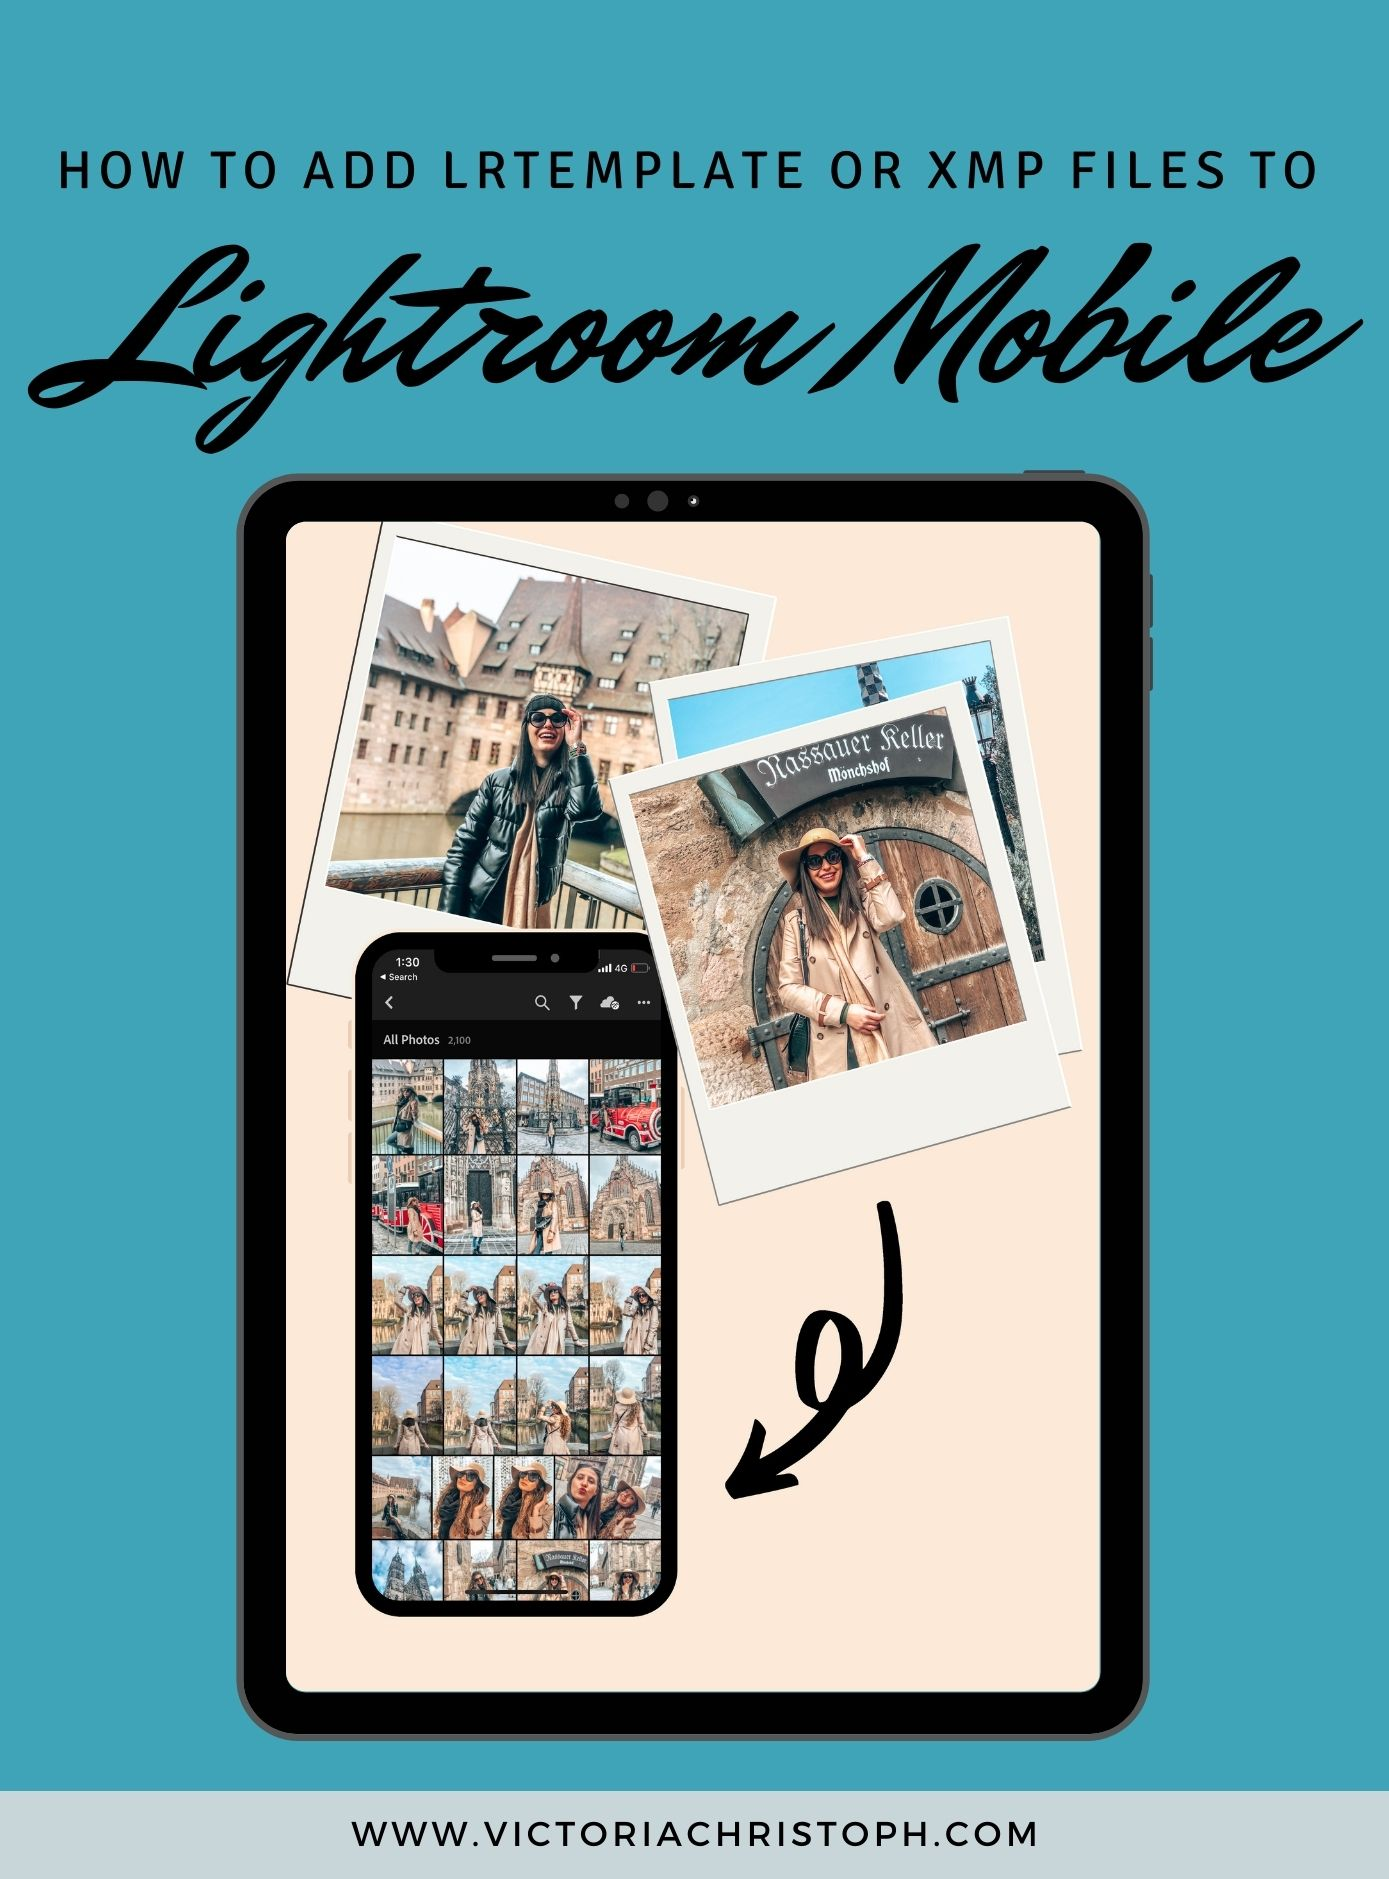 How To Add lrtemplate or XMP Files To Lightroom Mobile?